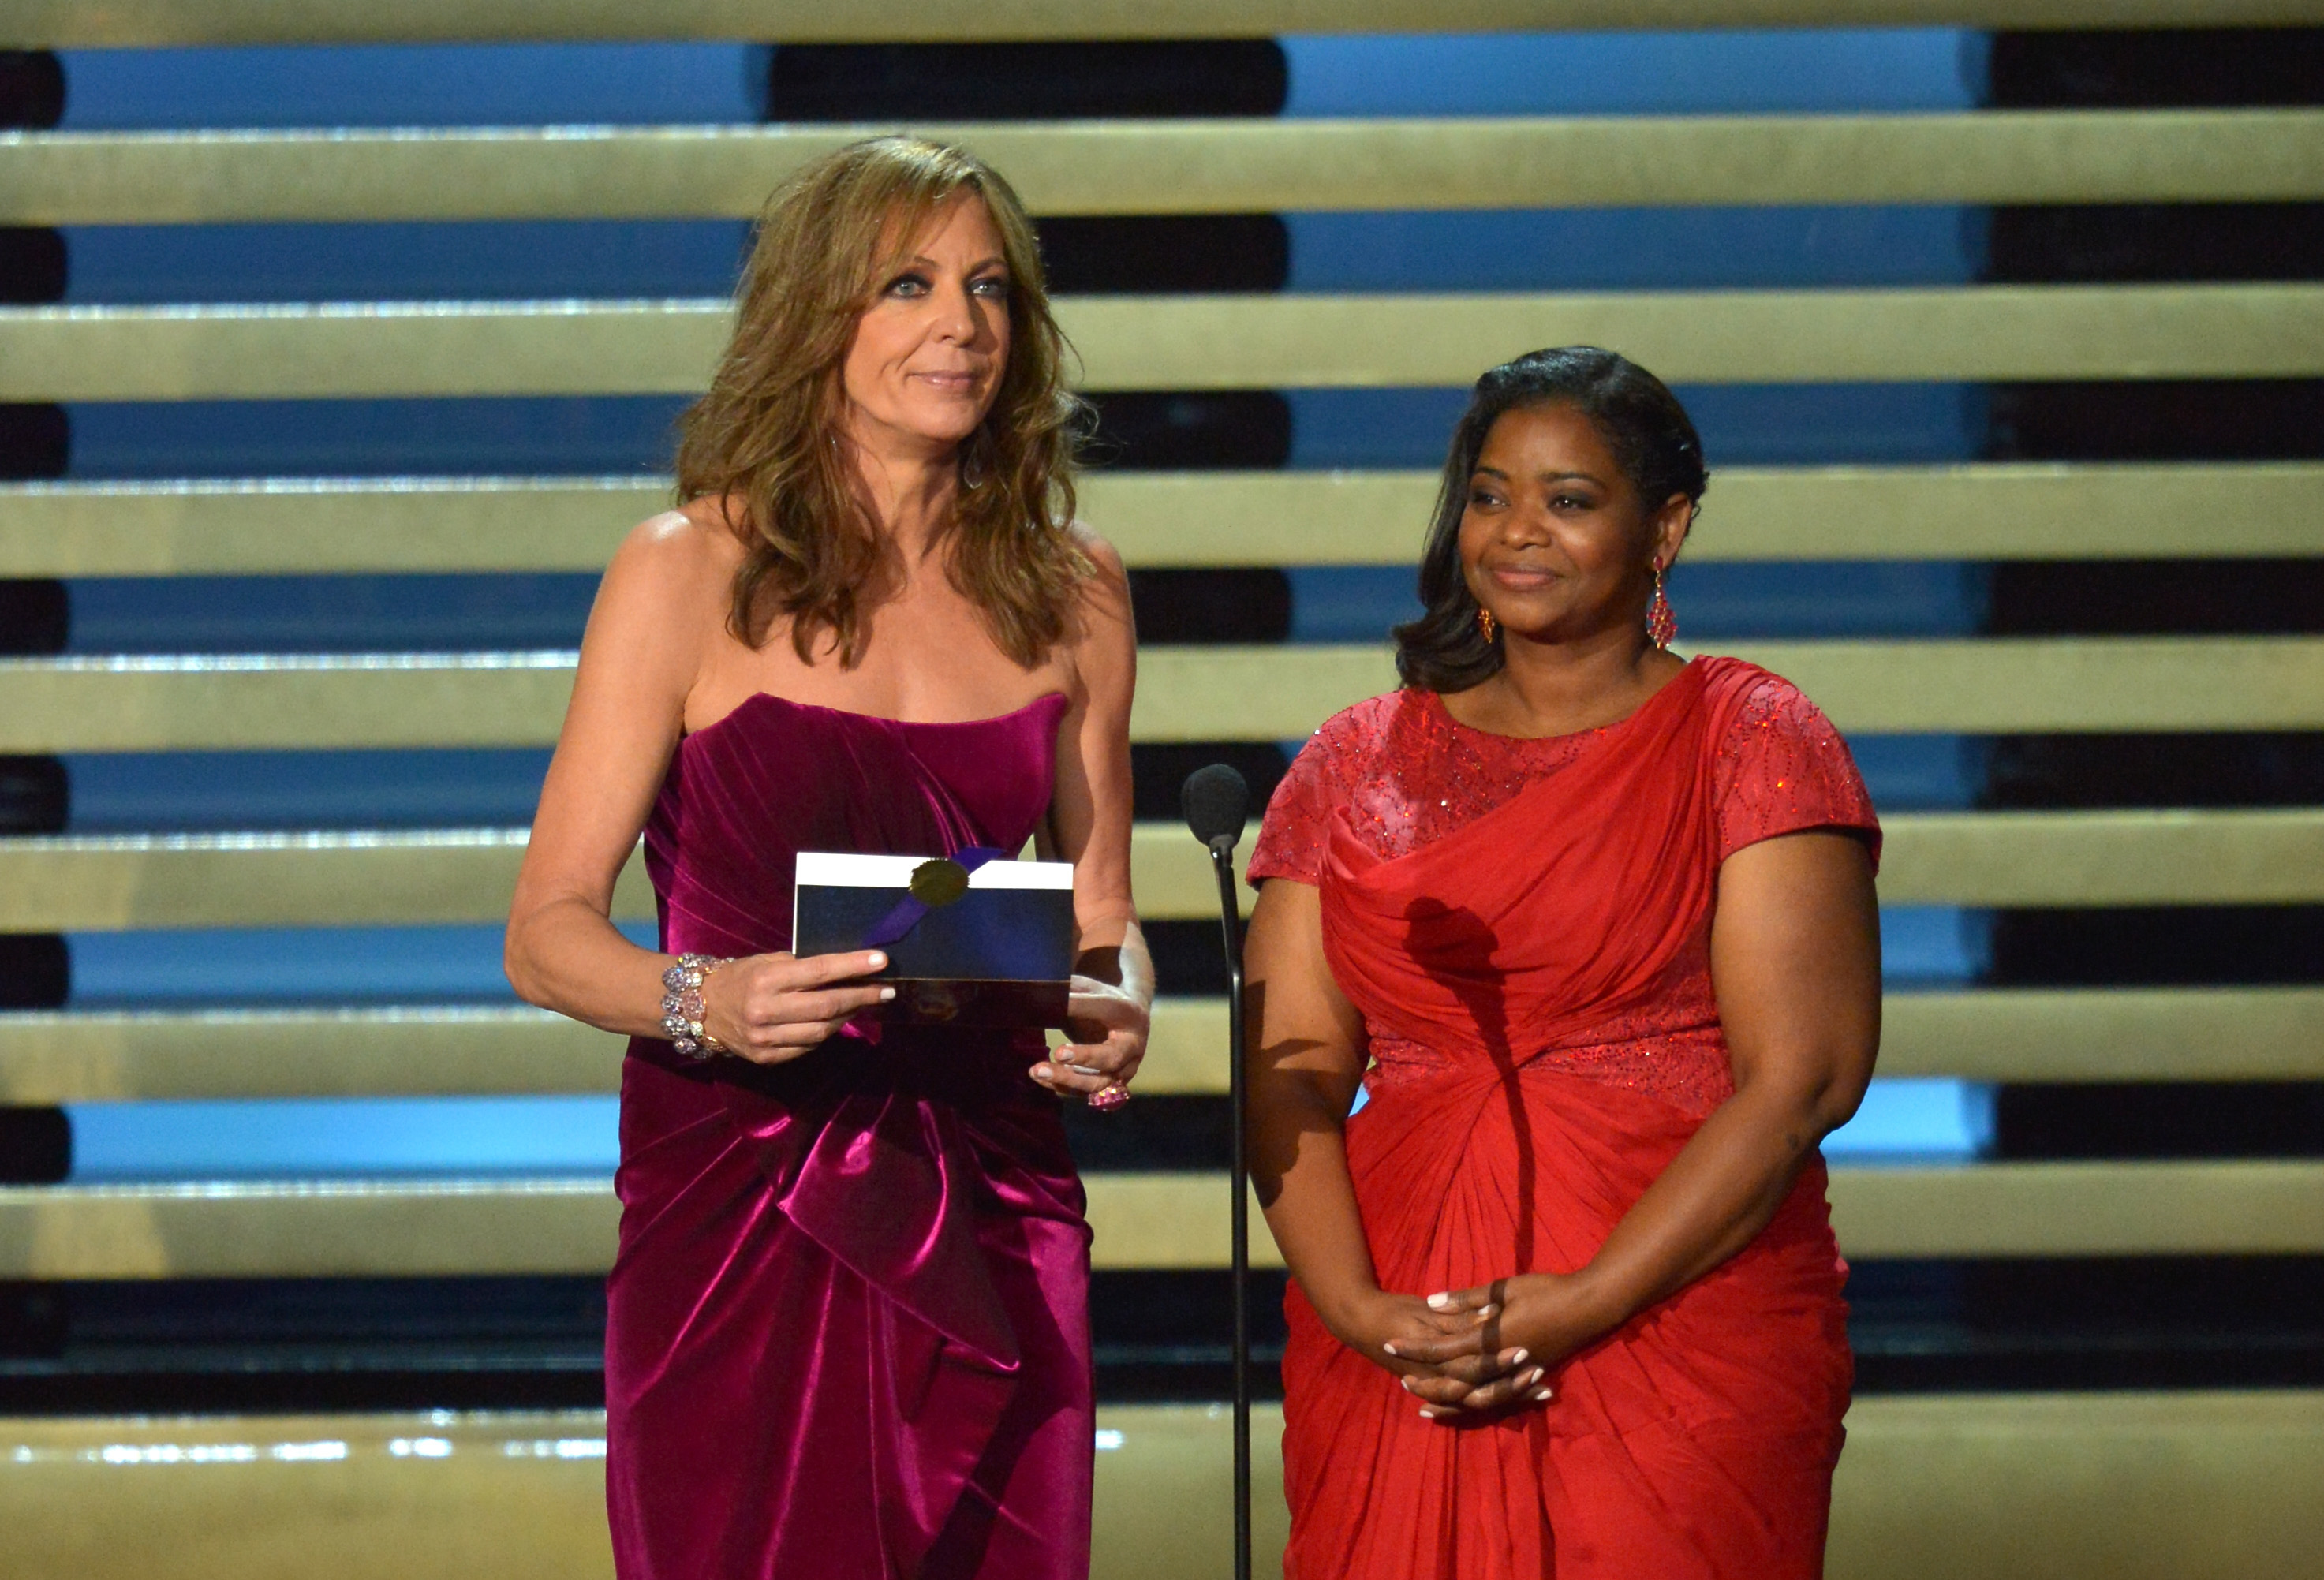 Allison Janney and Octavia Spencer present at the 66th Annual Primetime Emmy Awards.